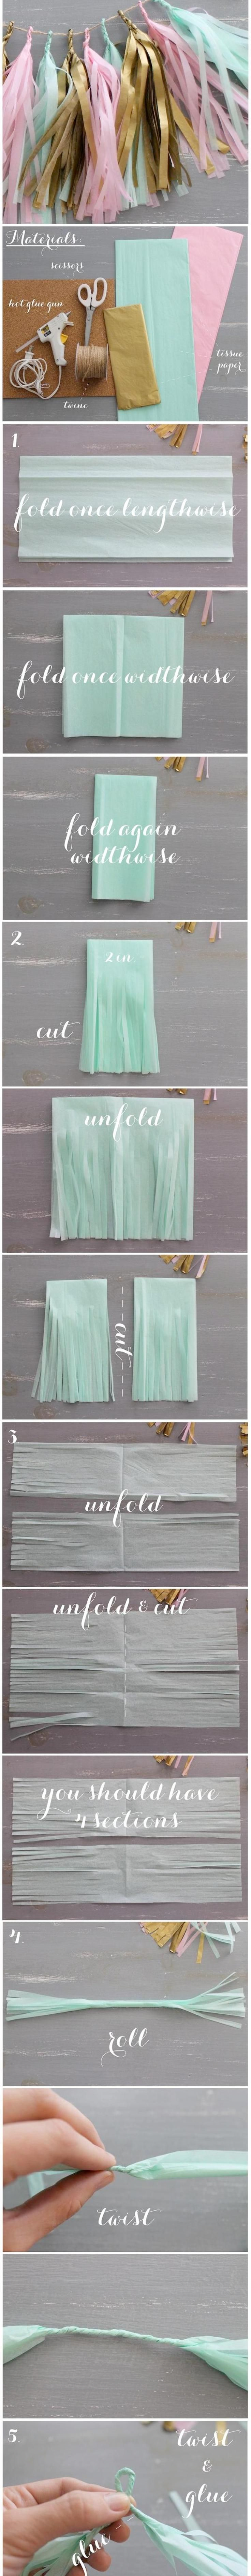 Perfect for #decor or #parties #howto make #tassel #garland #diy